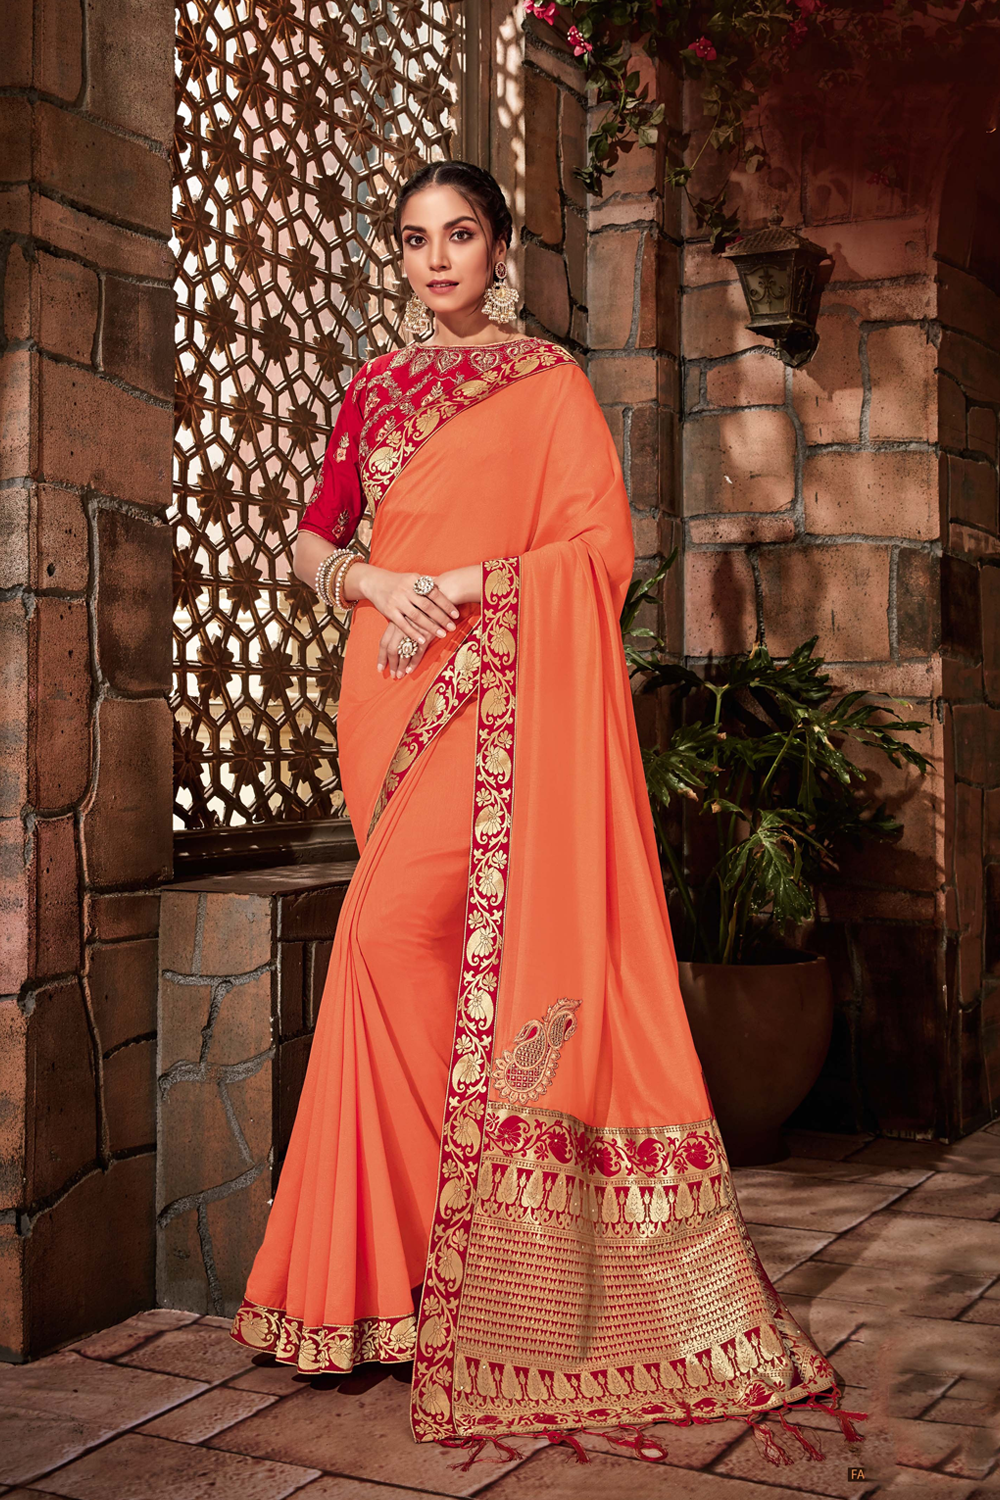 Saffron-red colors weaved beautifully with golden threads saree